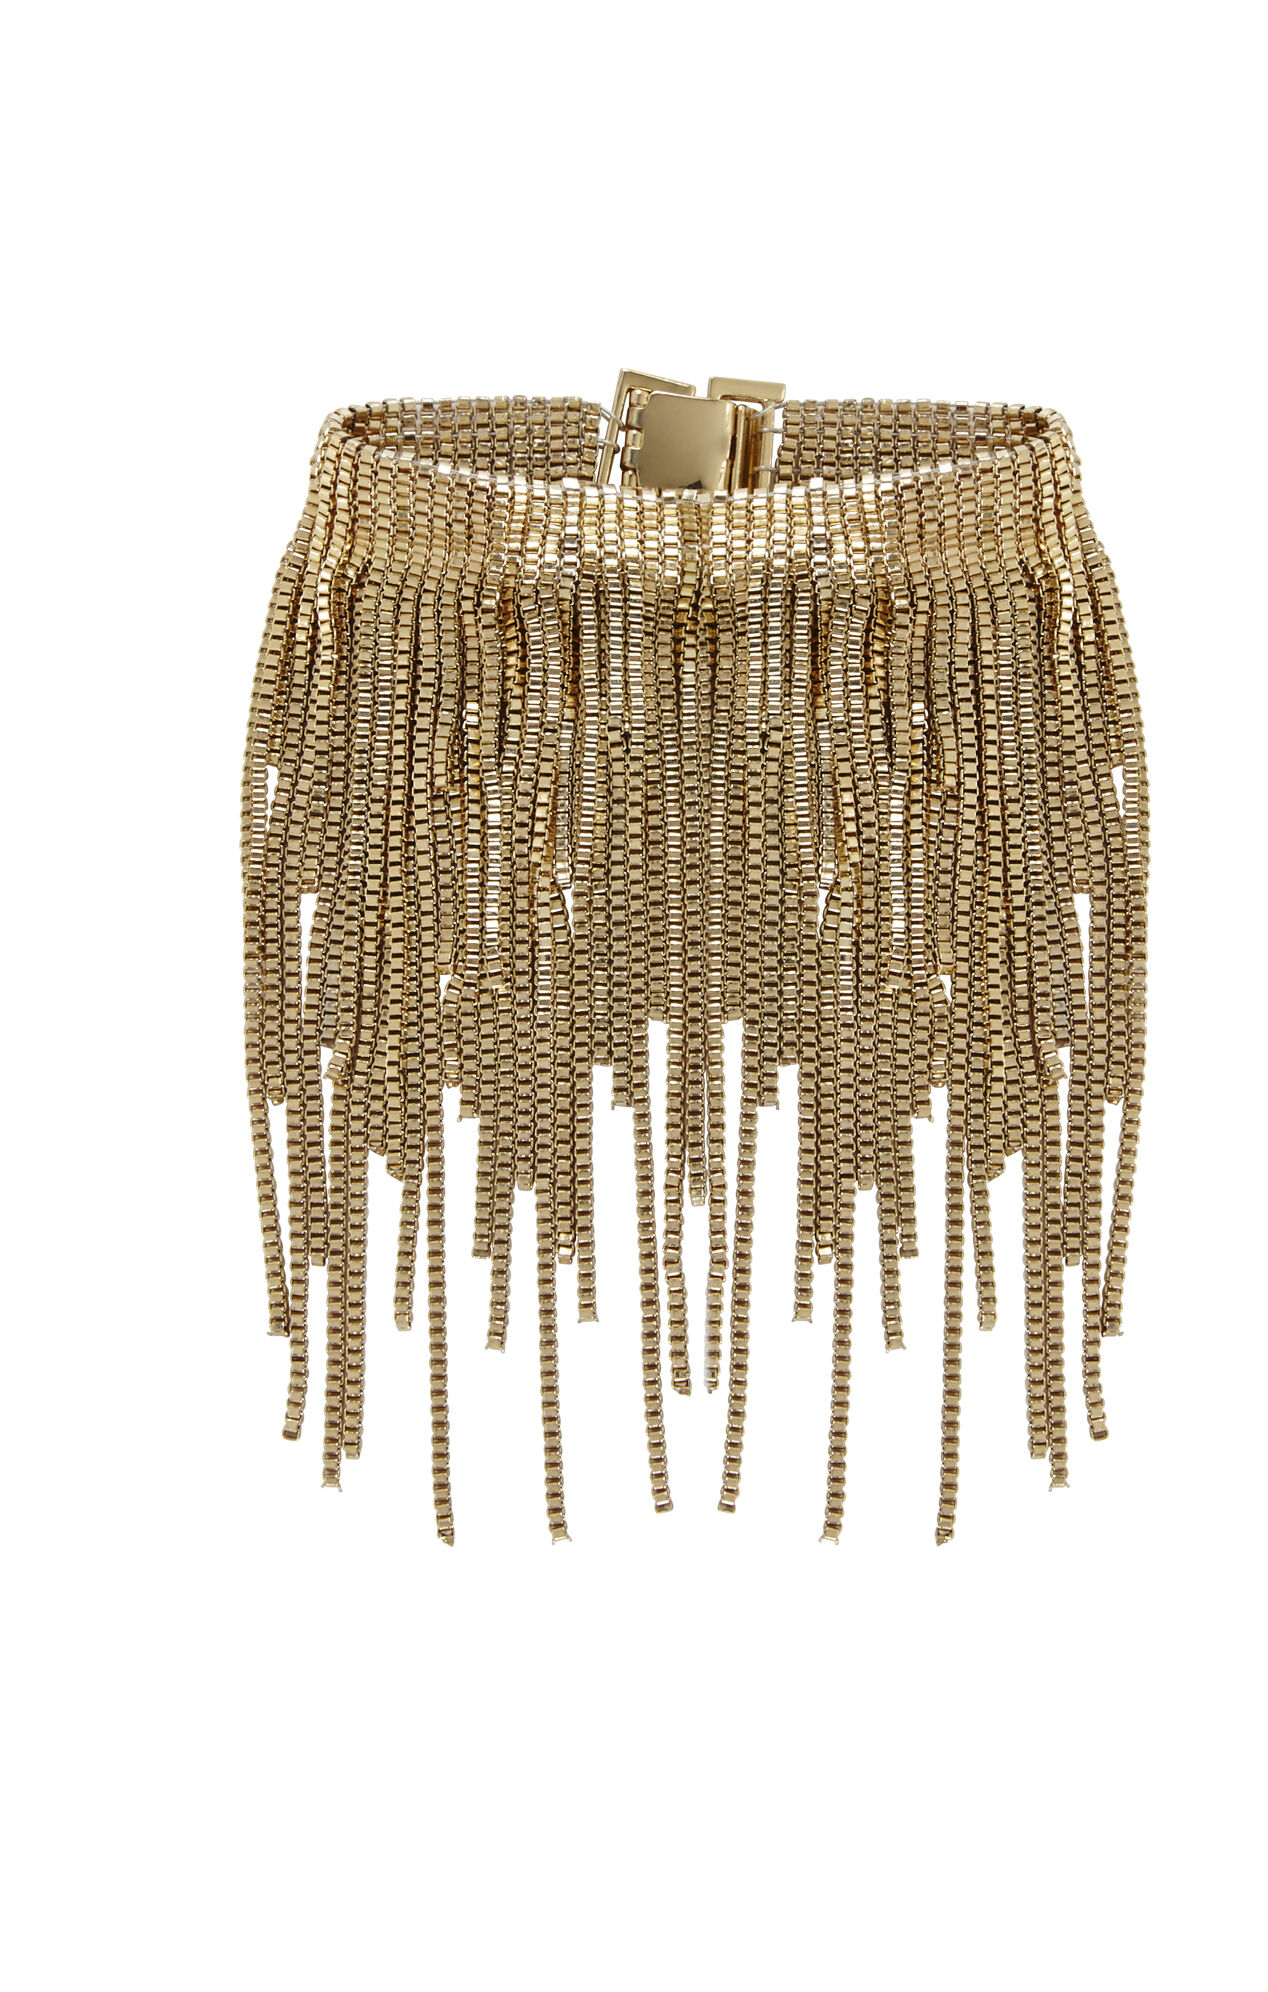 Box-Chain Fringe Bracelet